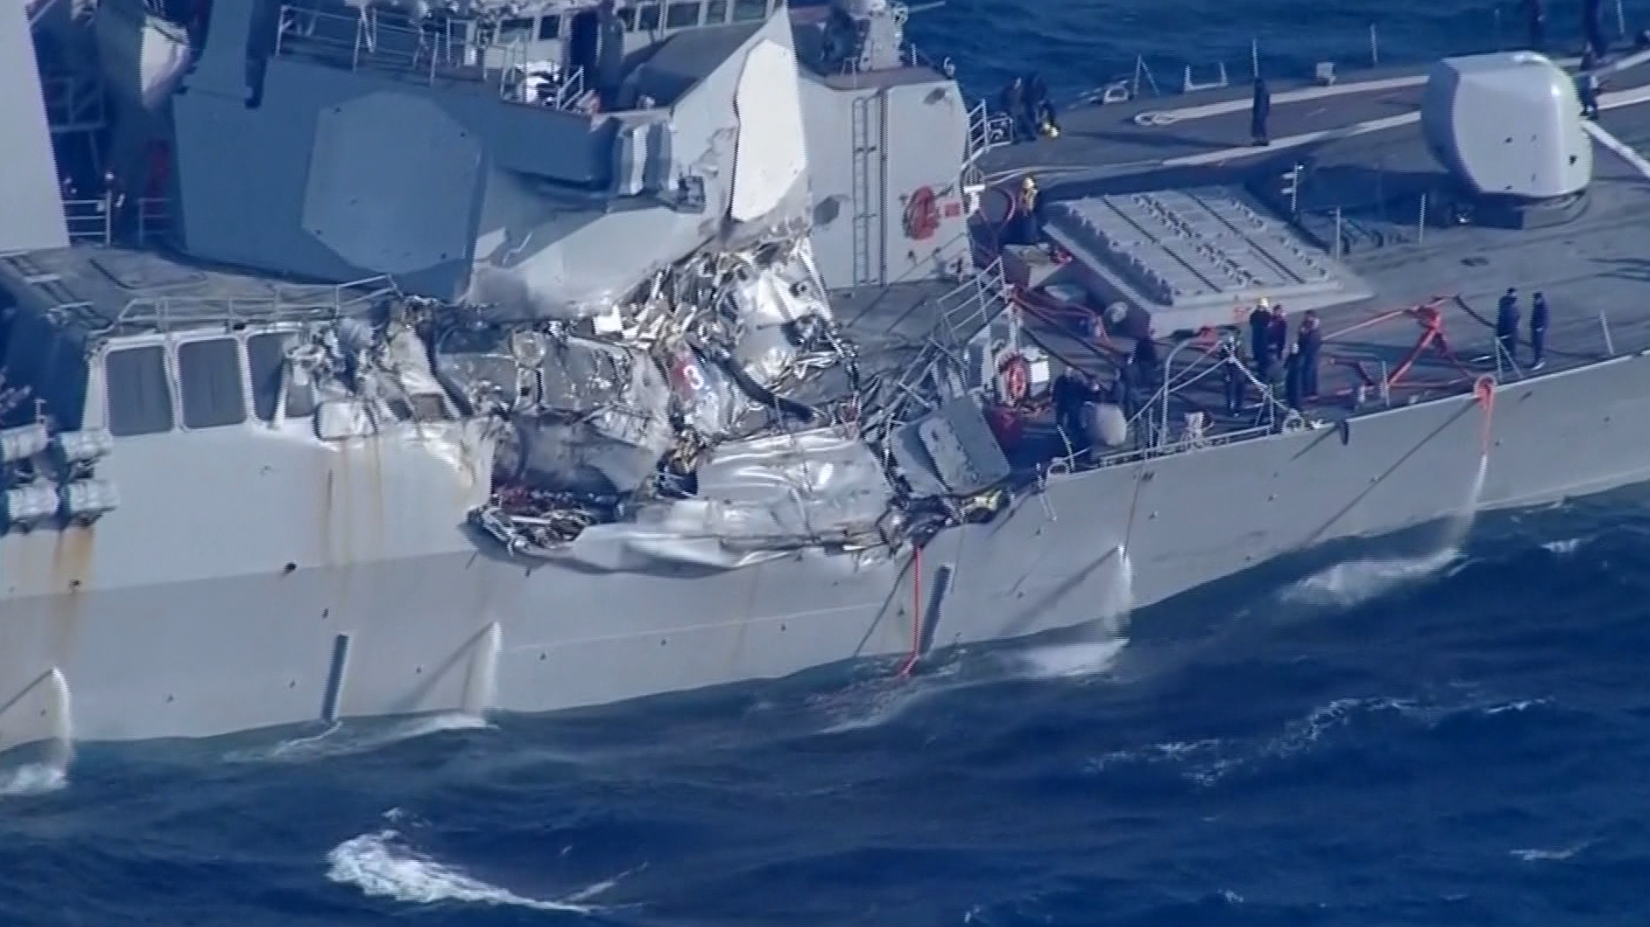 NBC: APTN provides tape playback of a U.S. Navy destroyer that collided with a merchant ship off the coast of Japan.